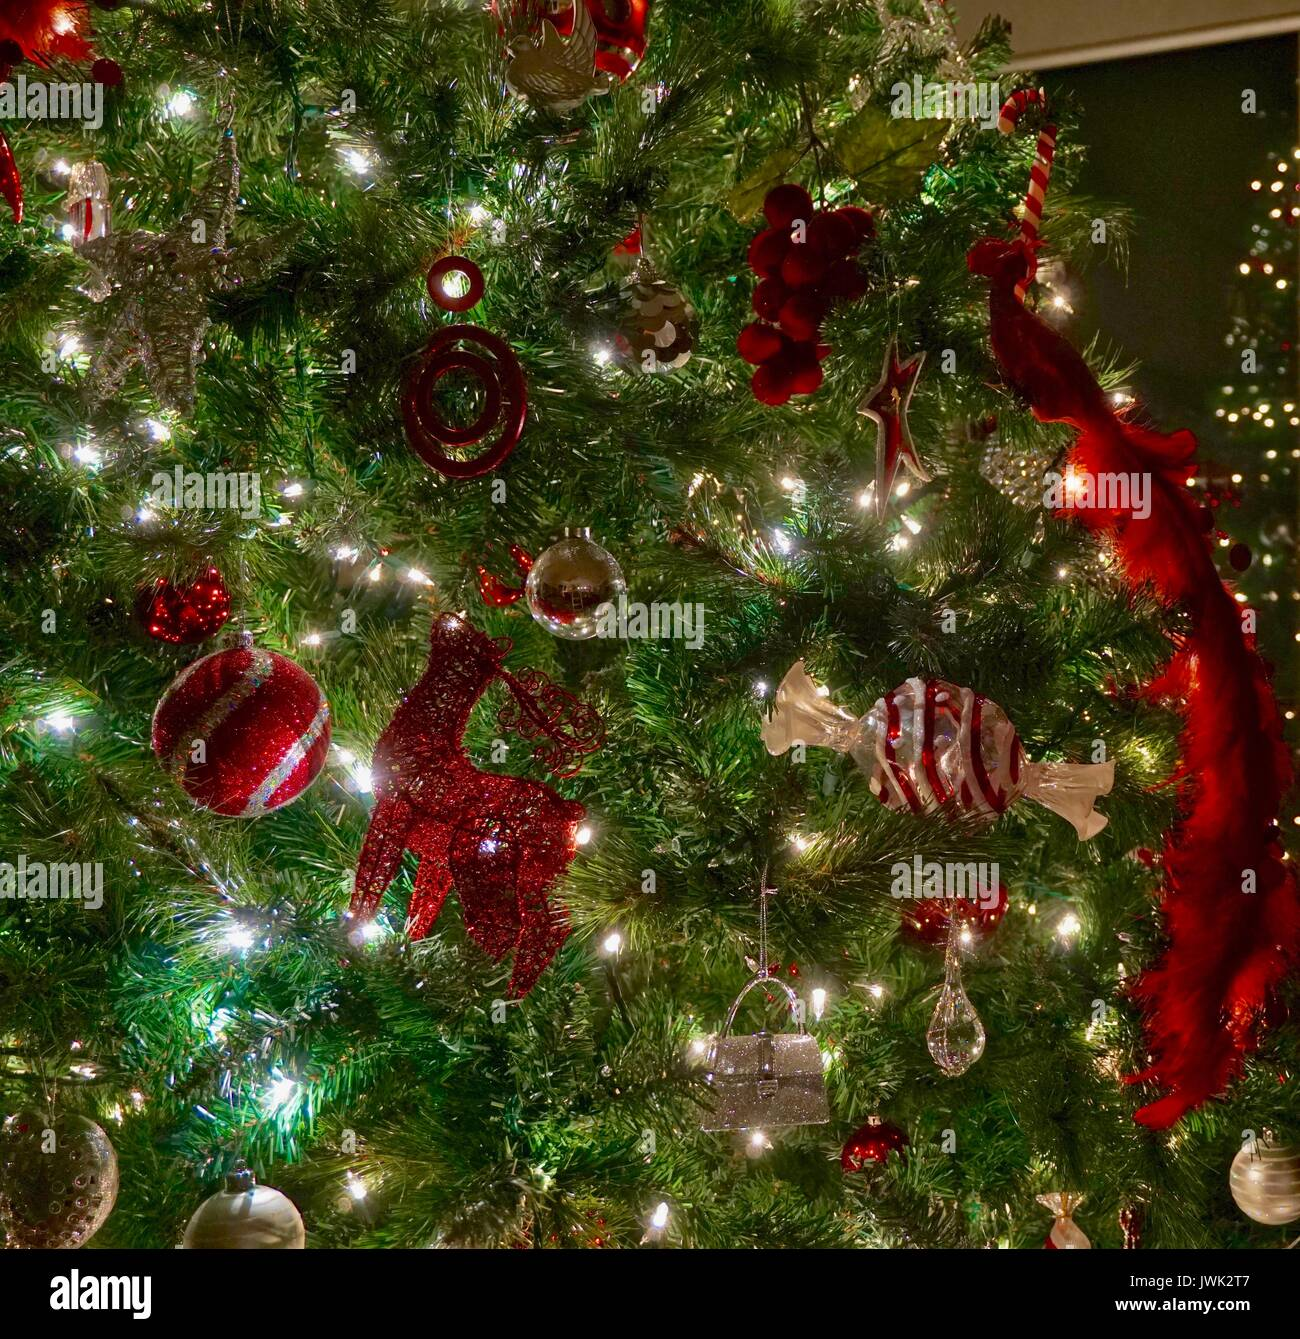 Night Time Shot Of Red And Silver Christmas Tree Decorations Stock Photo Alamy